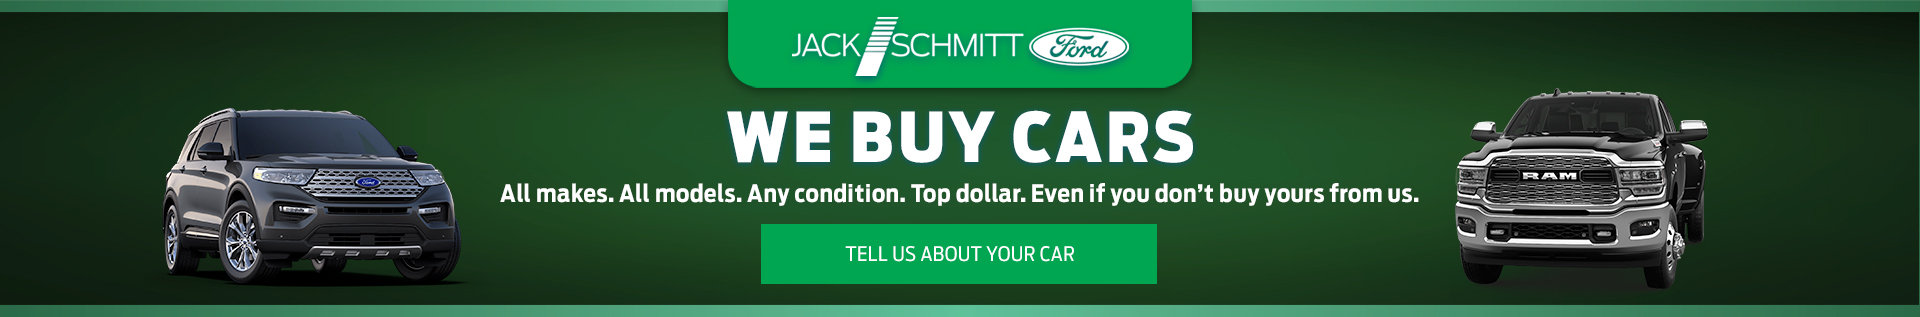 We Buy Cars Spring Srp Banner